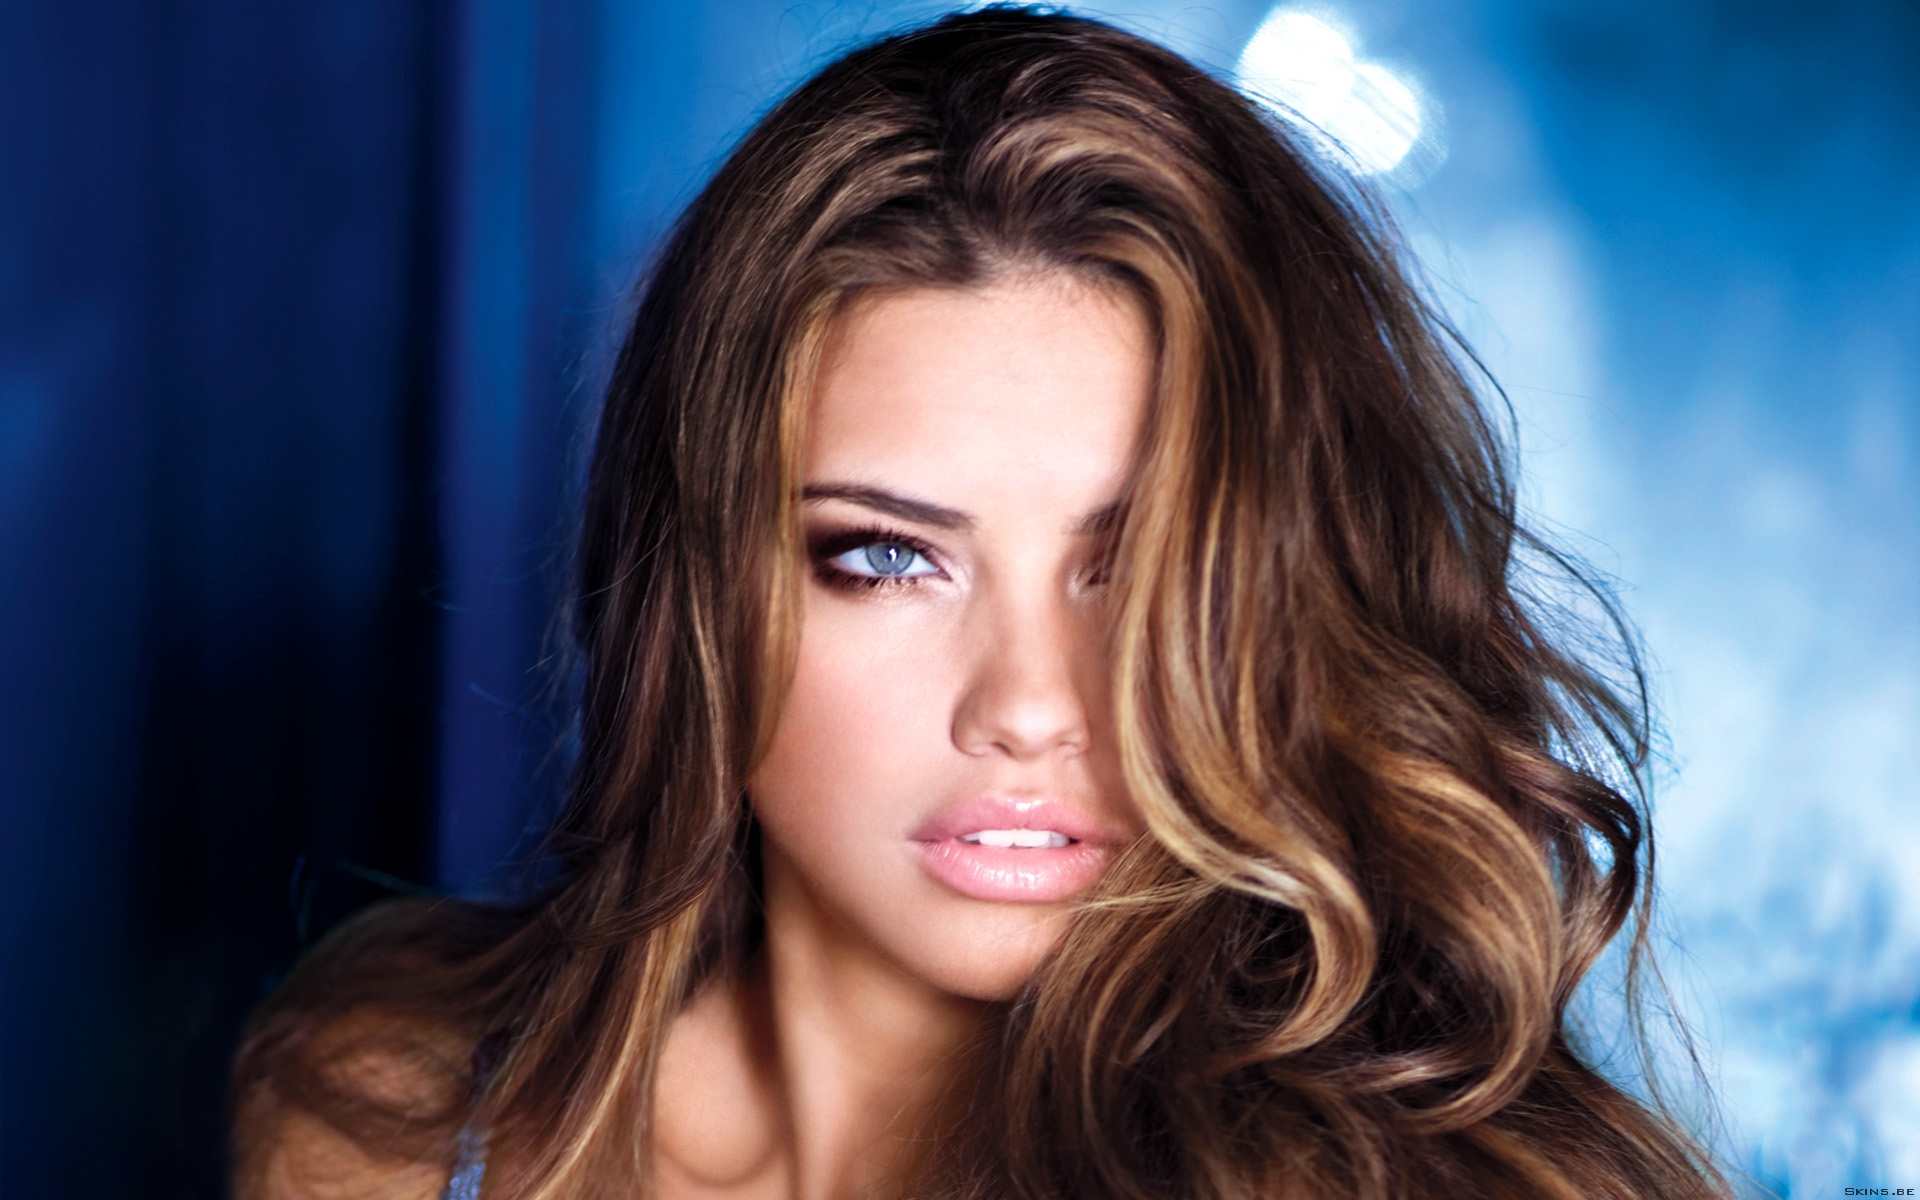 Adriana Lima Wide Screen HD Wallpaper Adriana Lima HD